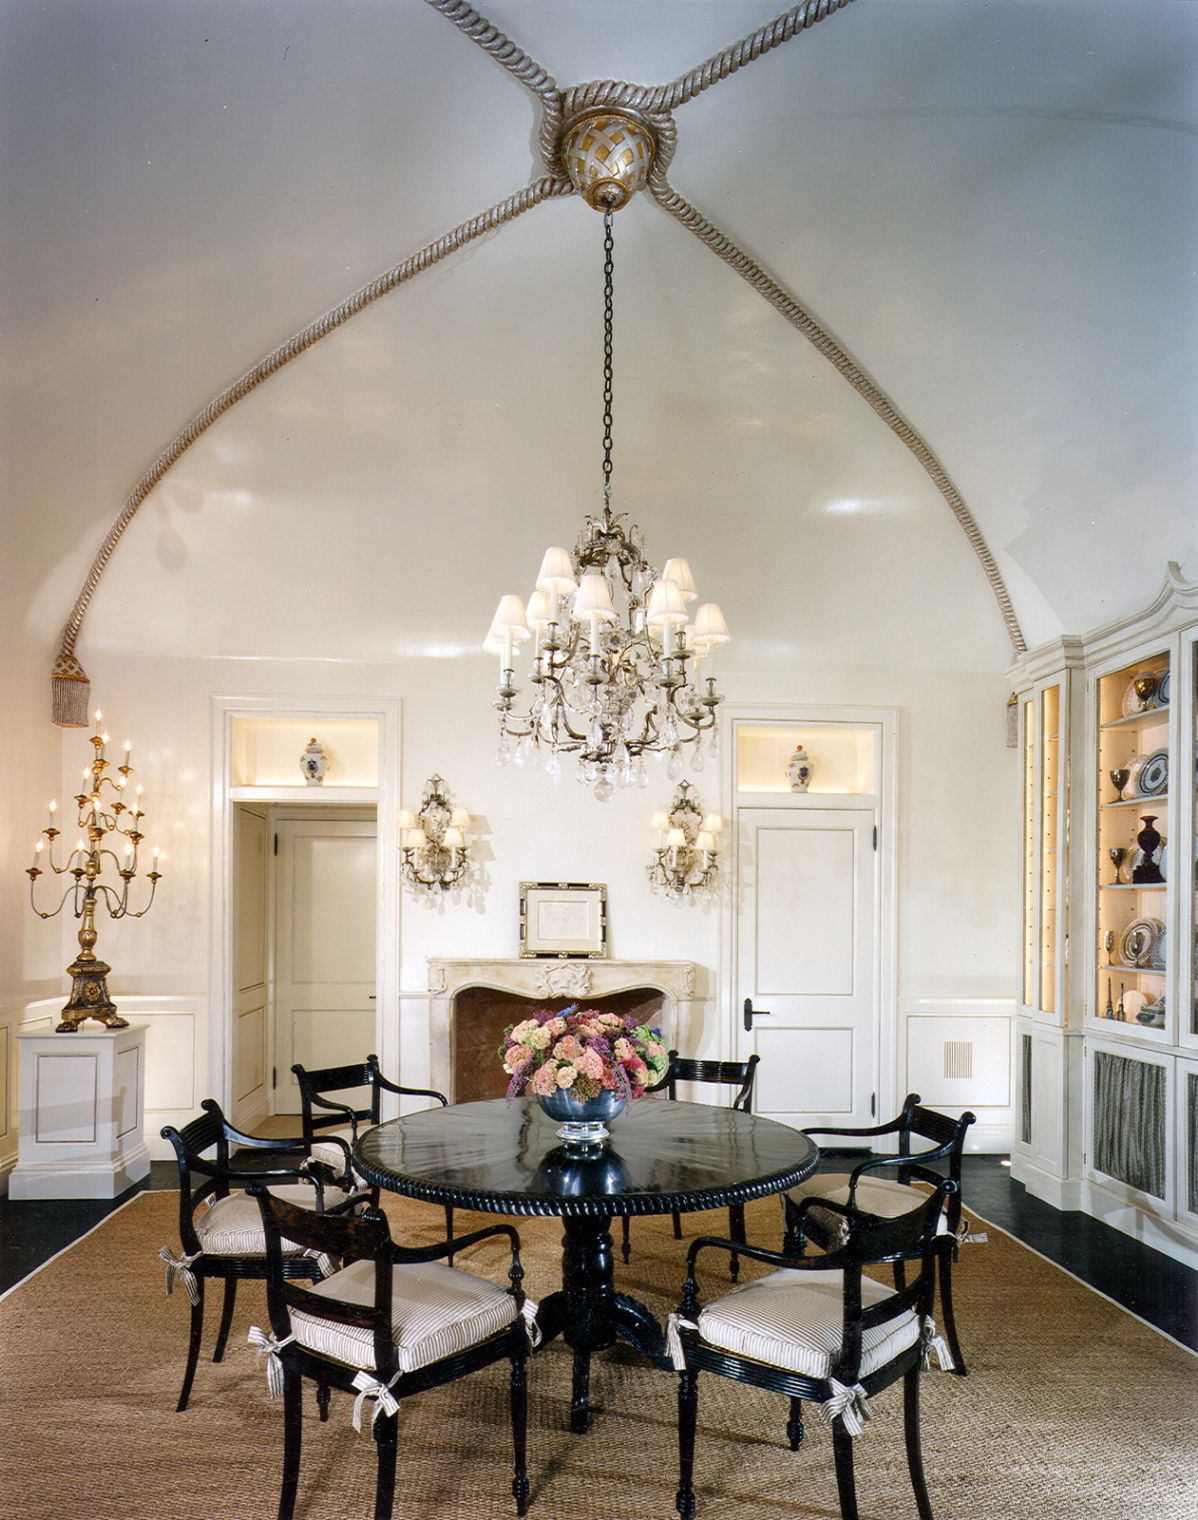 luxurious and classy vaulted ceiling design ideas for dining room